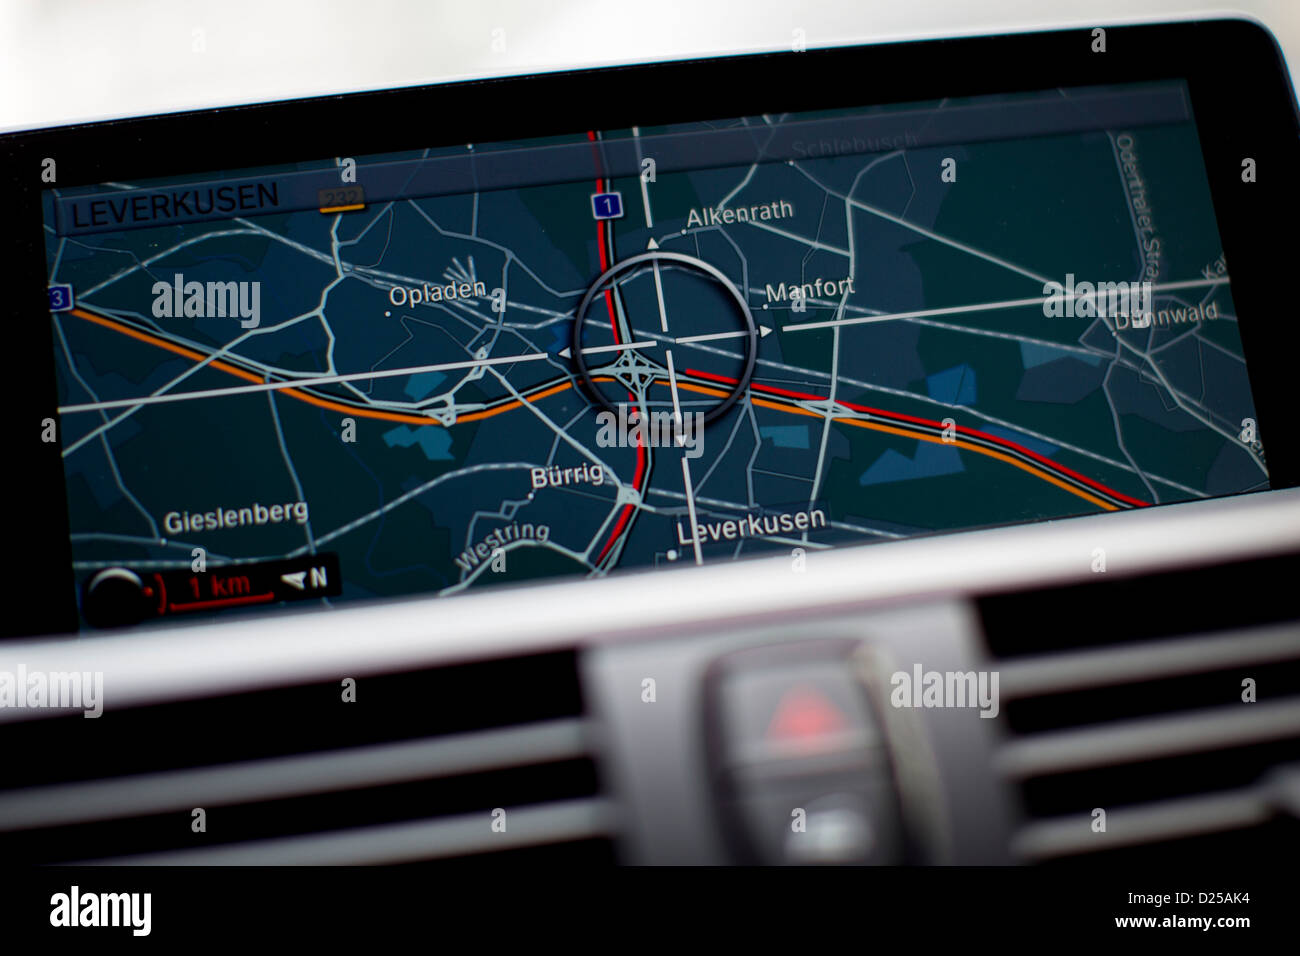 Yellow and red lines on the map of a navigation system indicates congested Autobahns A1 and A3 at the intersection - Stock Image